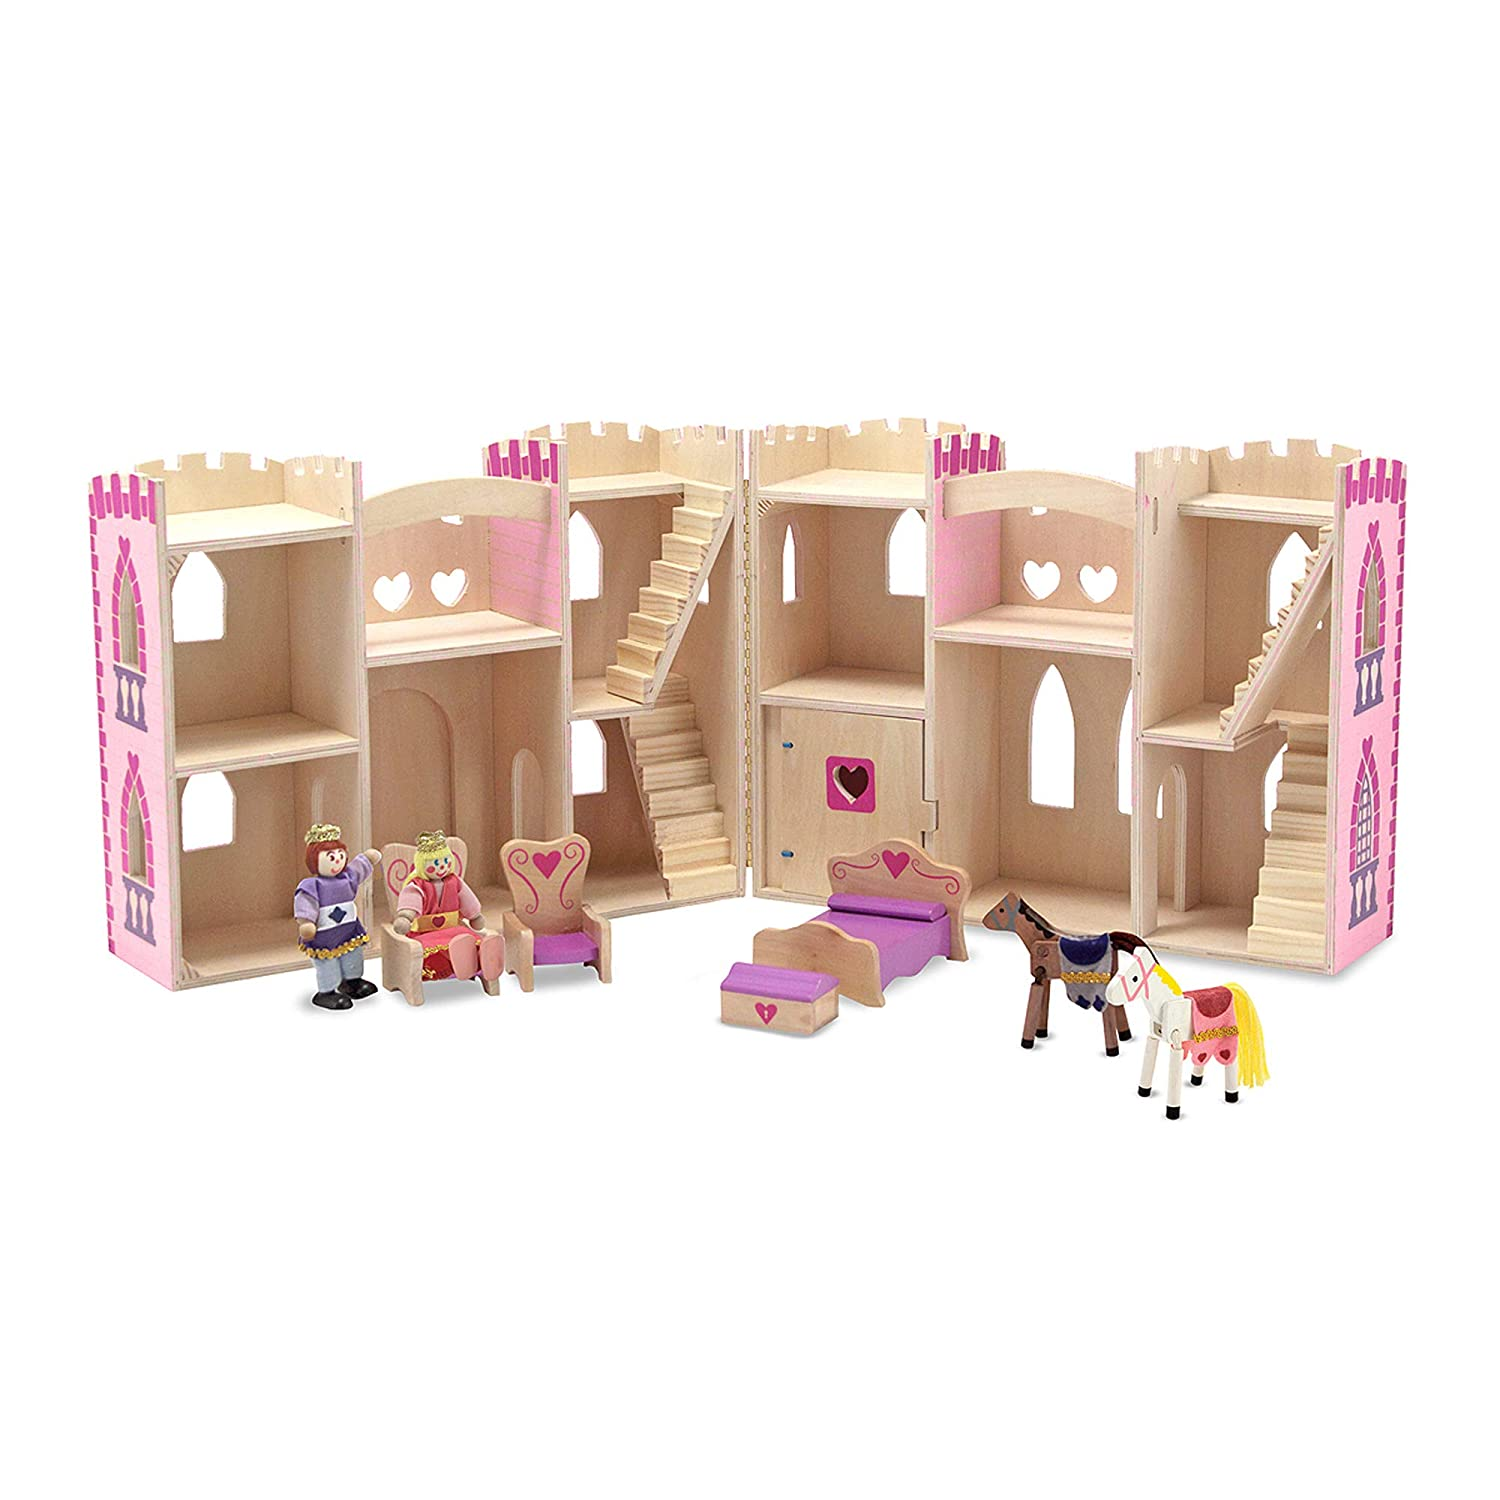 and 4 Pieces of Furniture 3708 2 Horses Melissa /& Doug Fold and Go Wooden Princess Castle With 2 Royal Play Figures